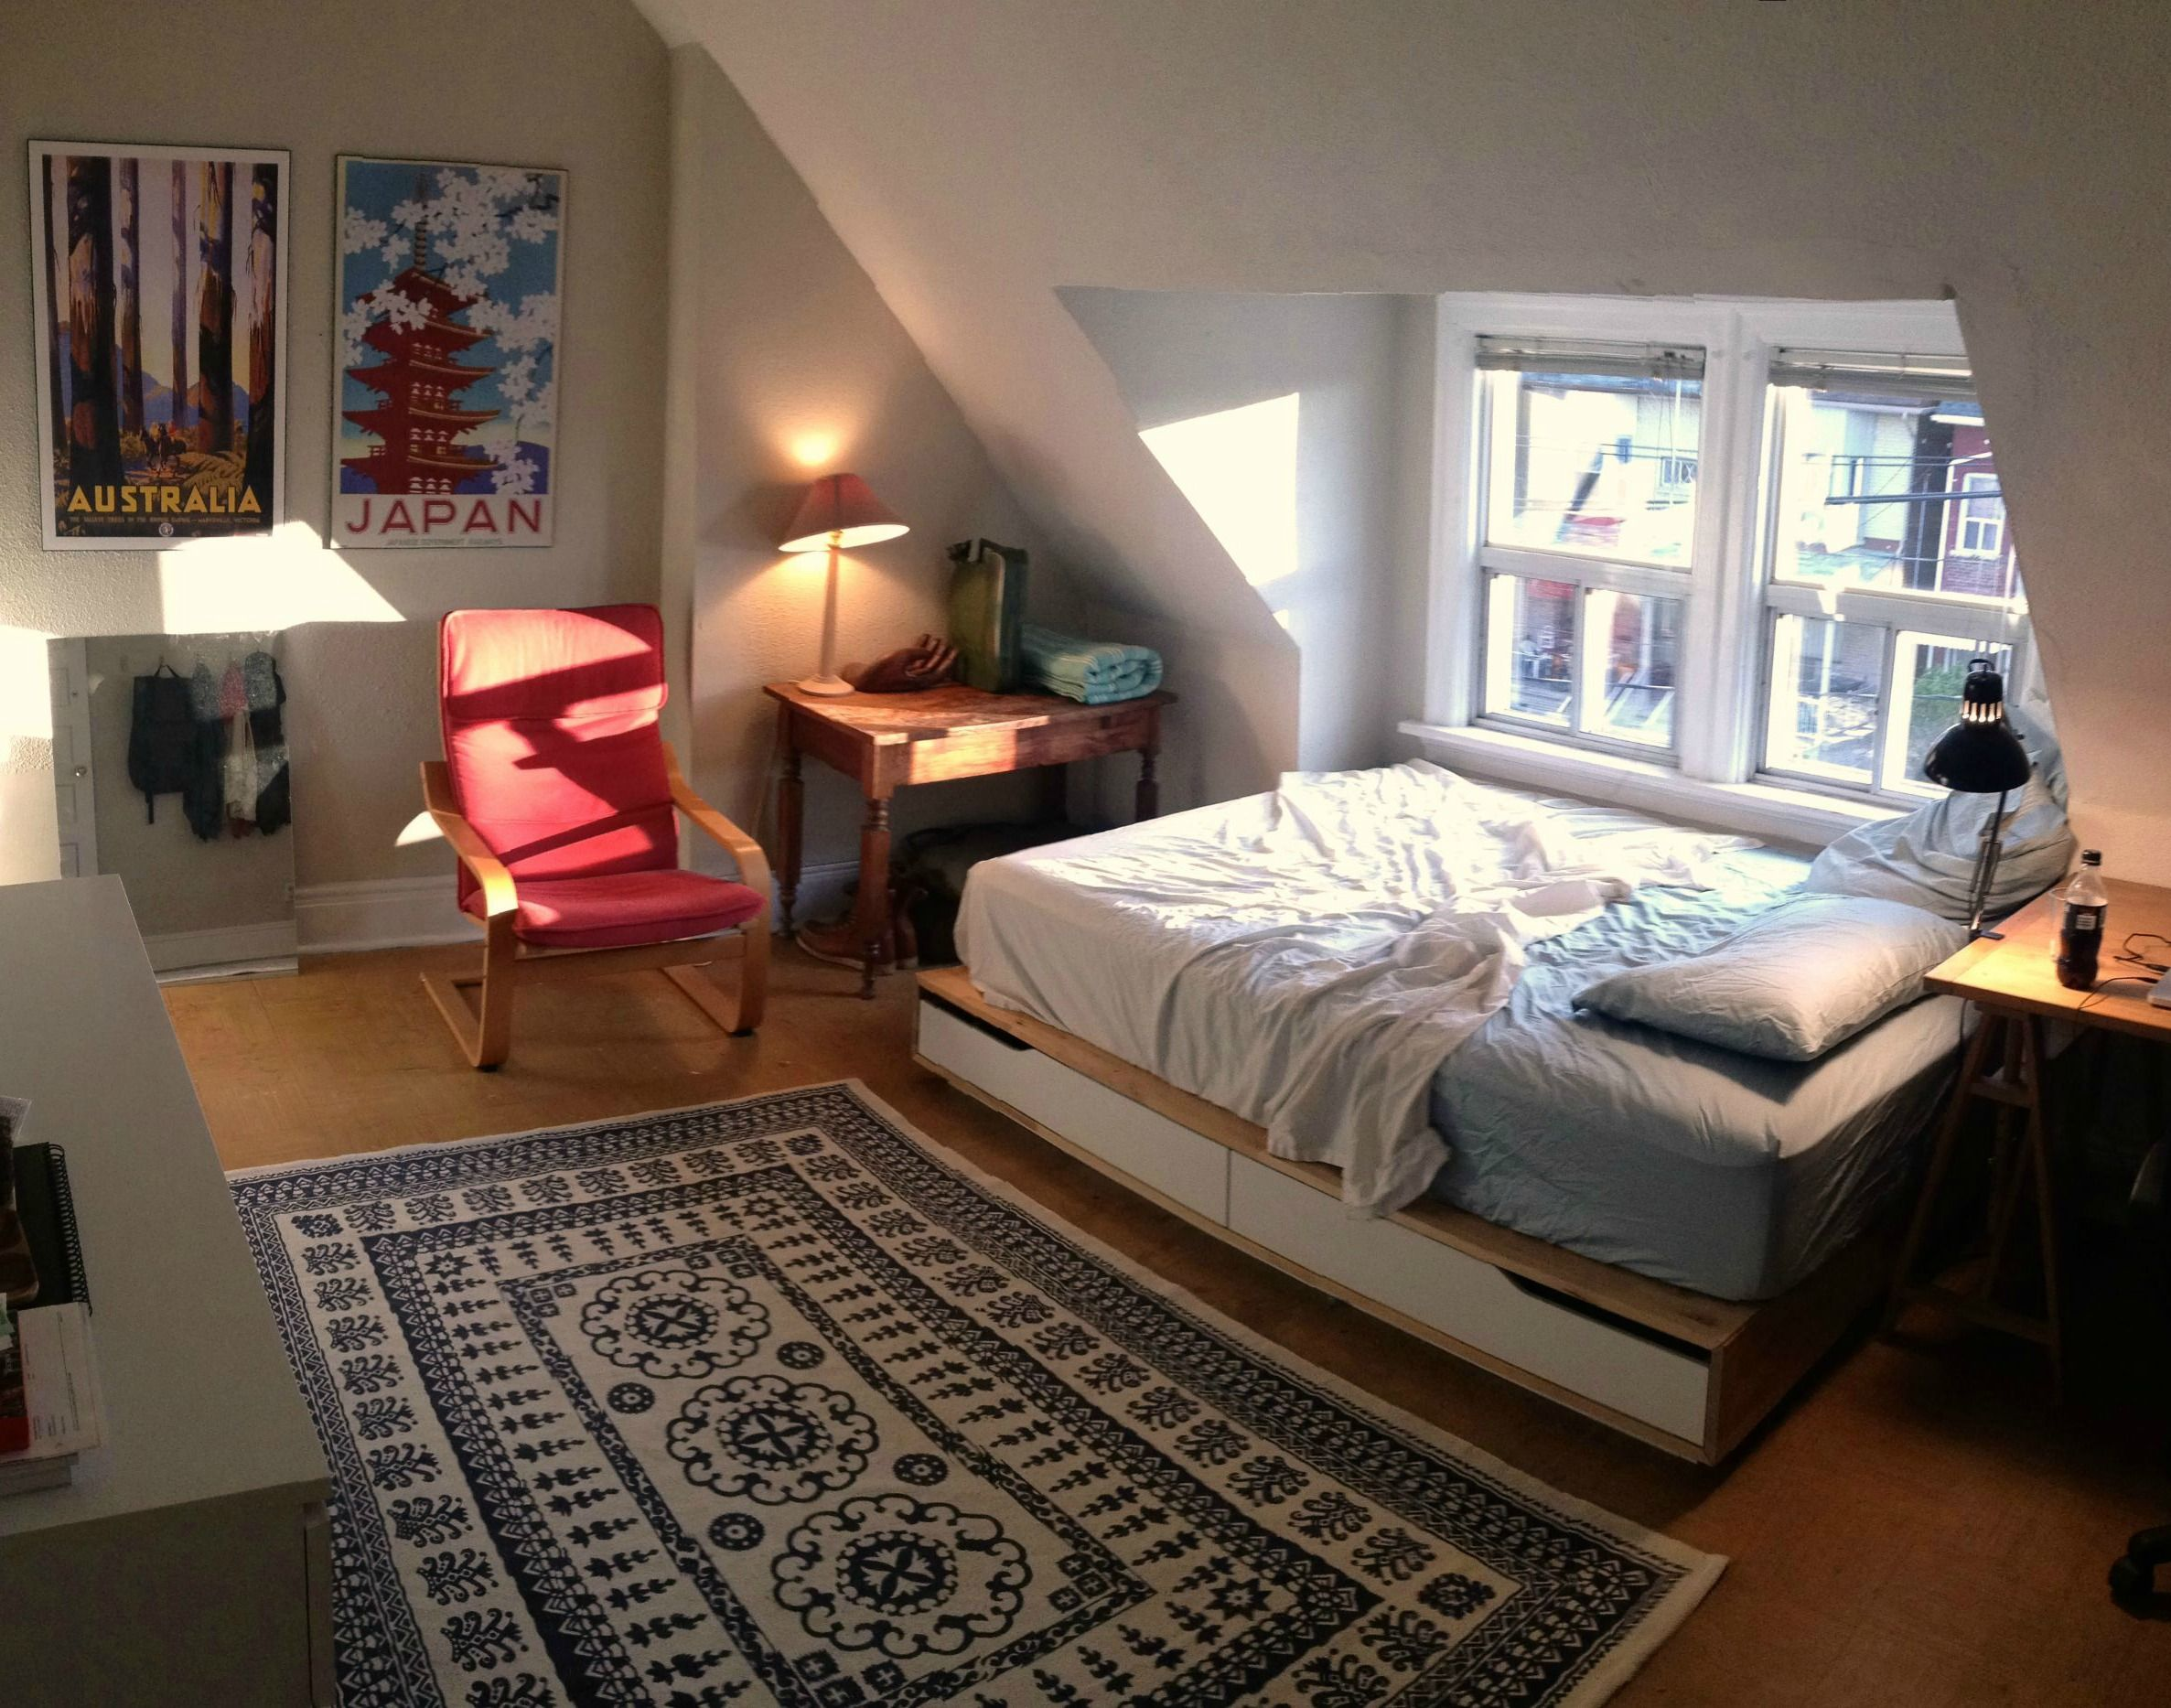 Student apartment bedroom - 90 Cozy Rooms You Ll Never Want To Leave Student Apartmentstudent